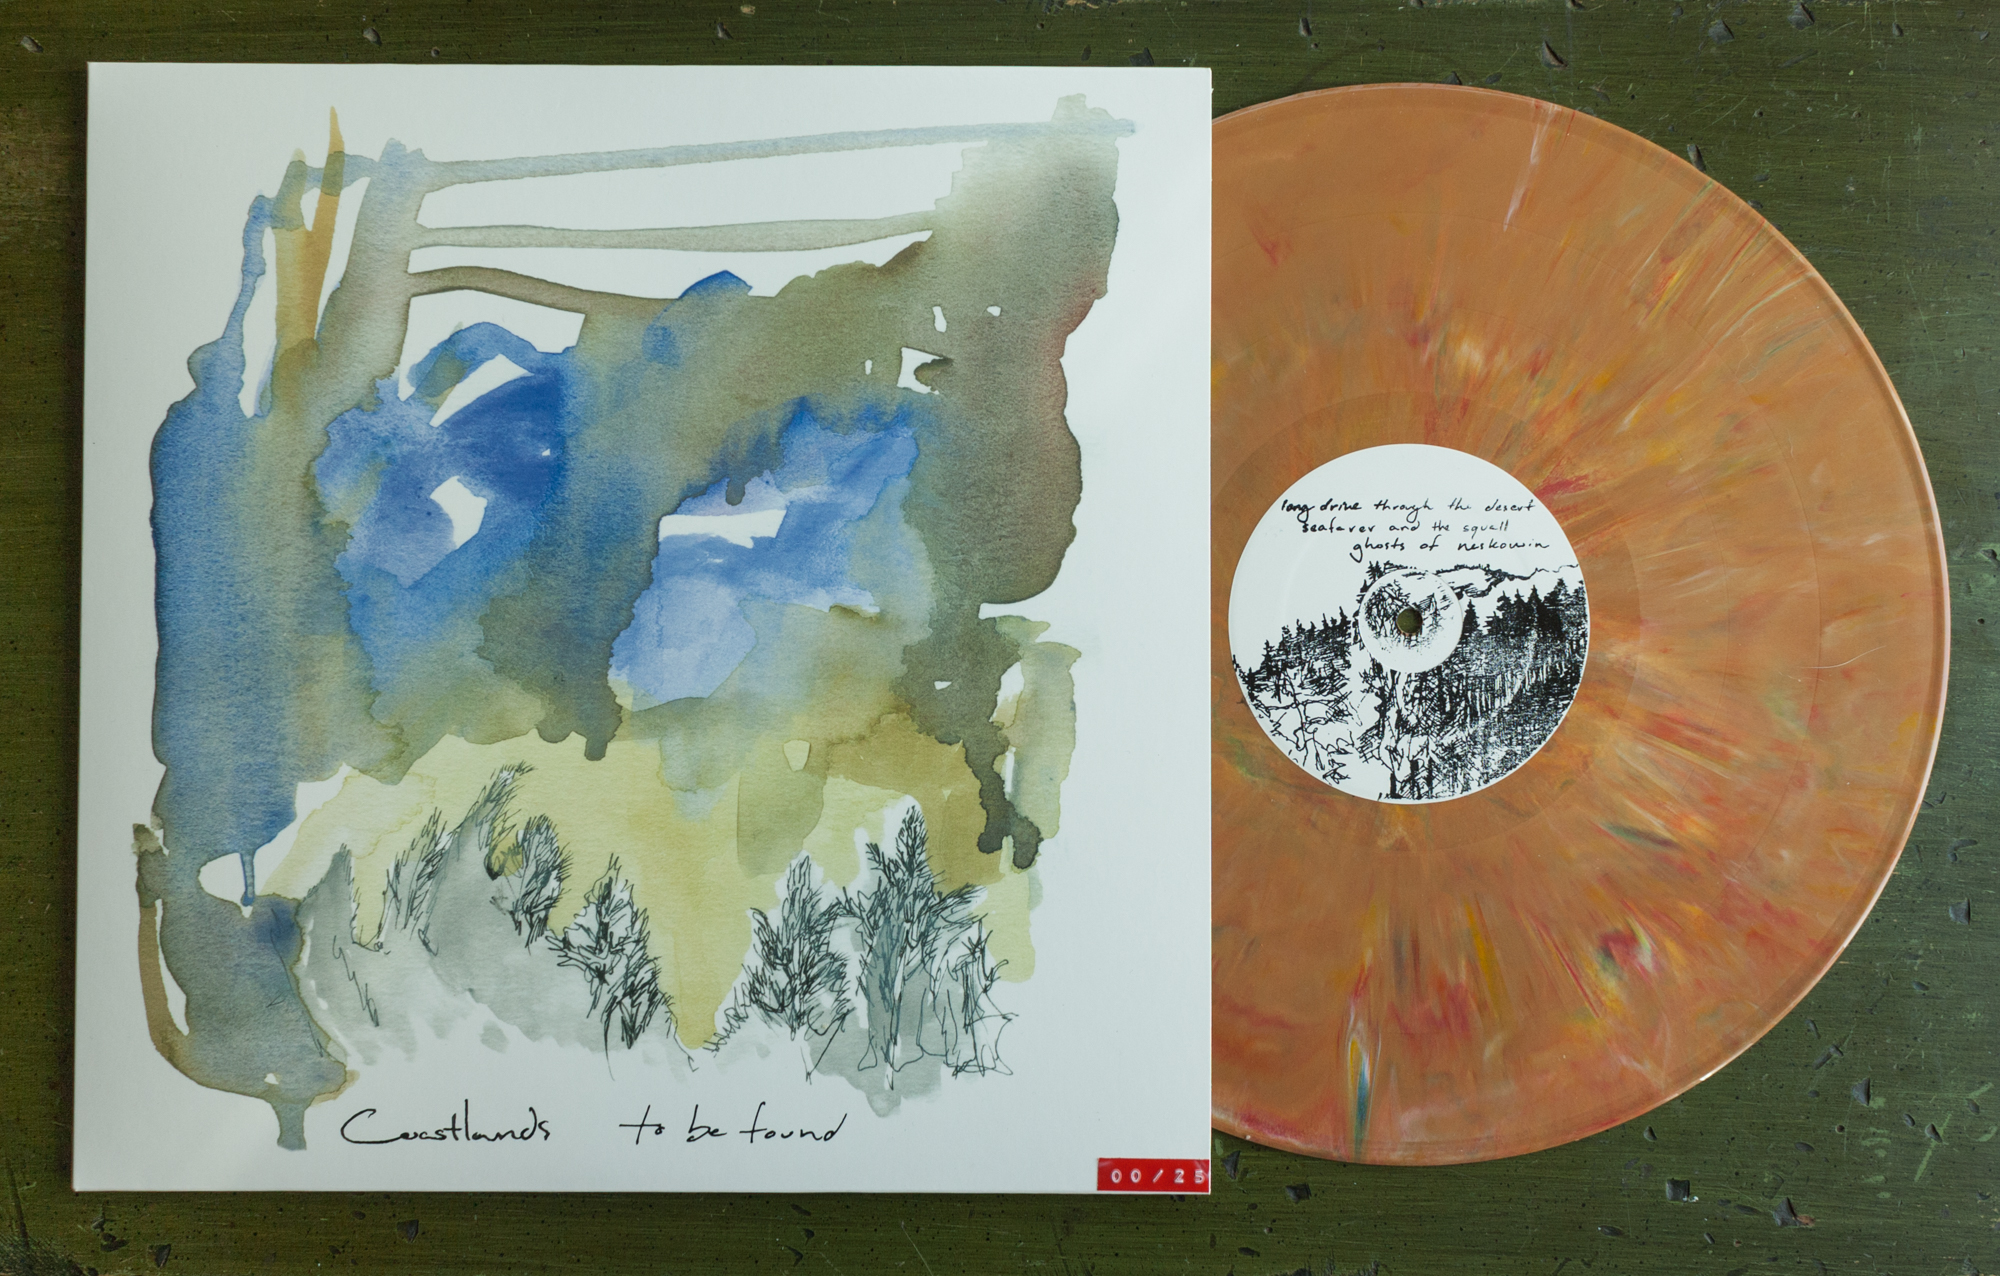 To Be Found, album cover and illustration on vinyl